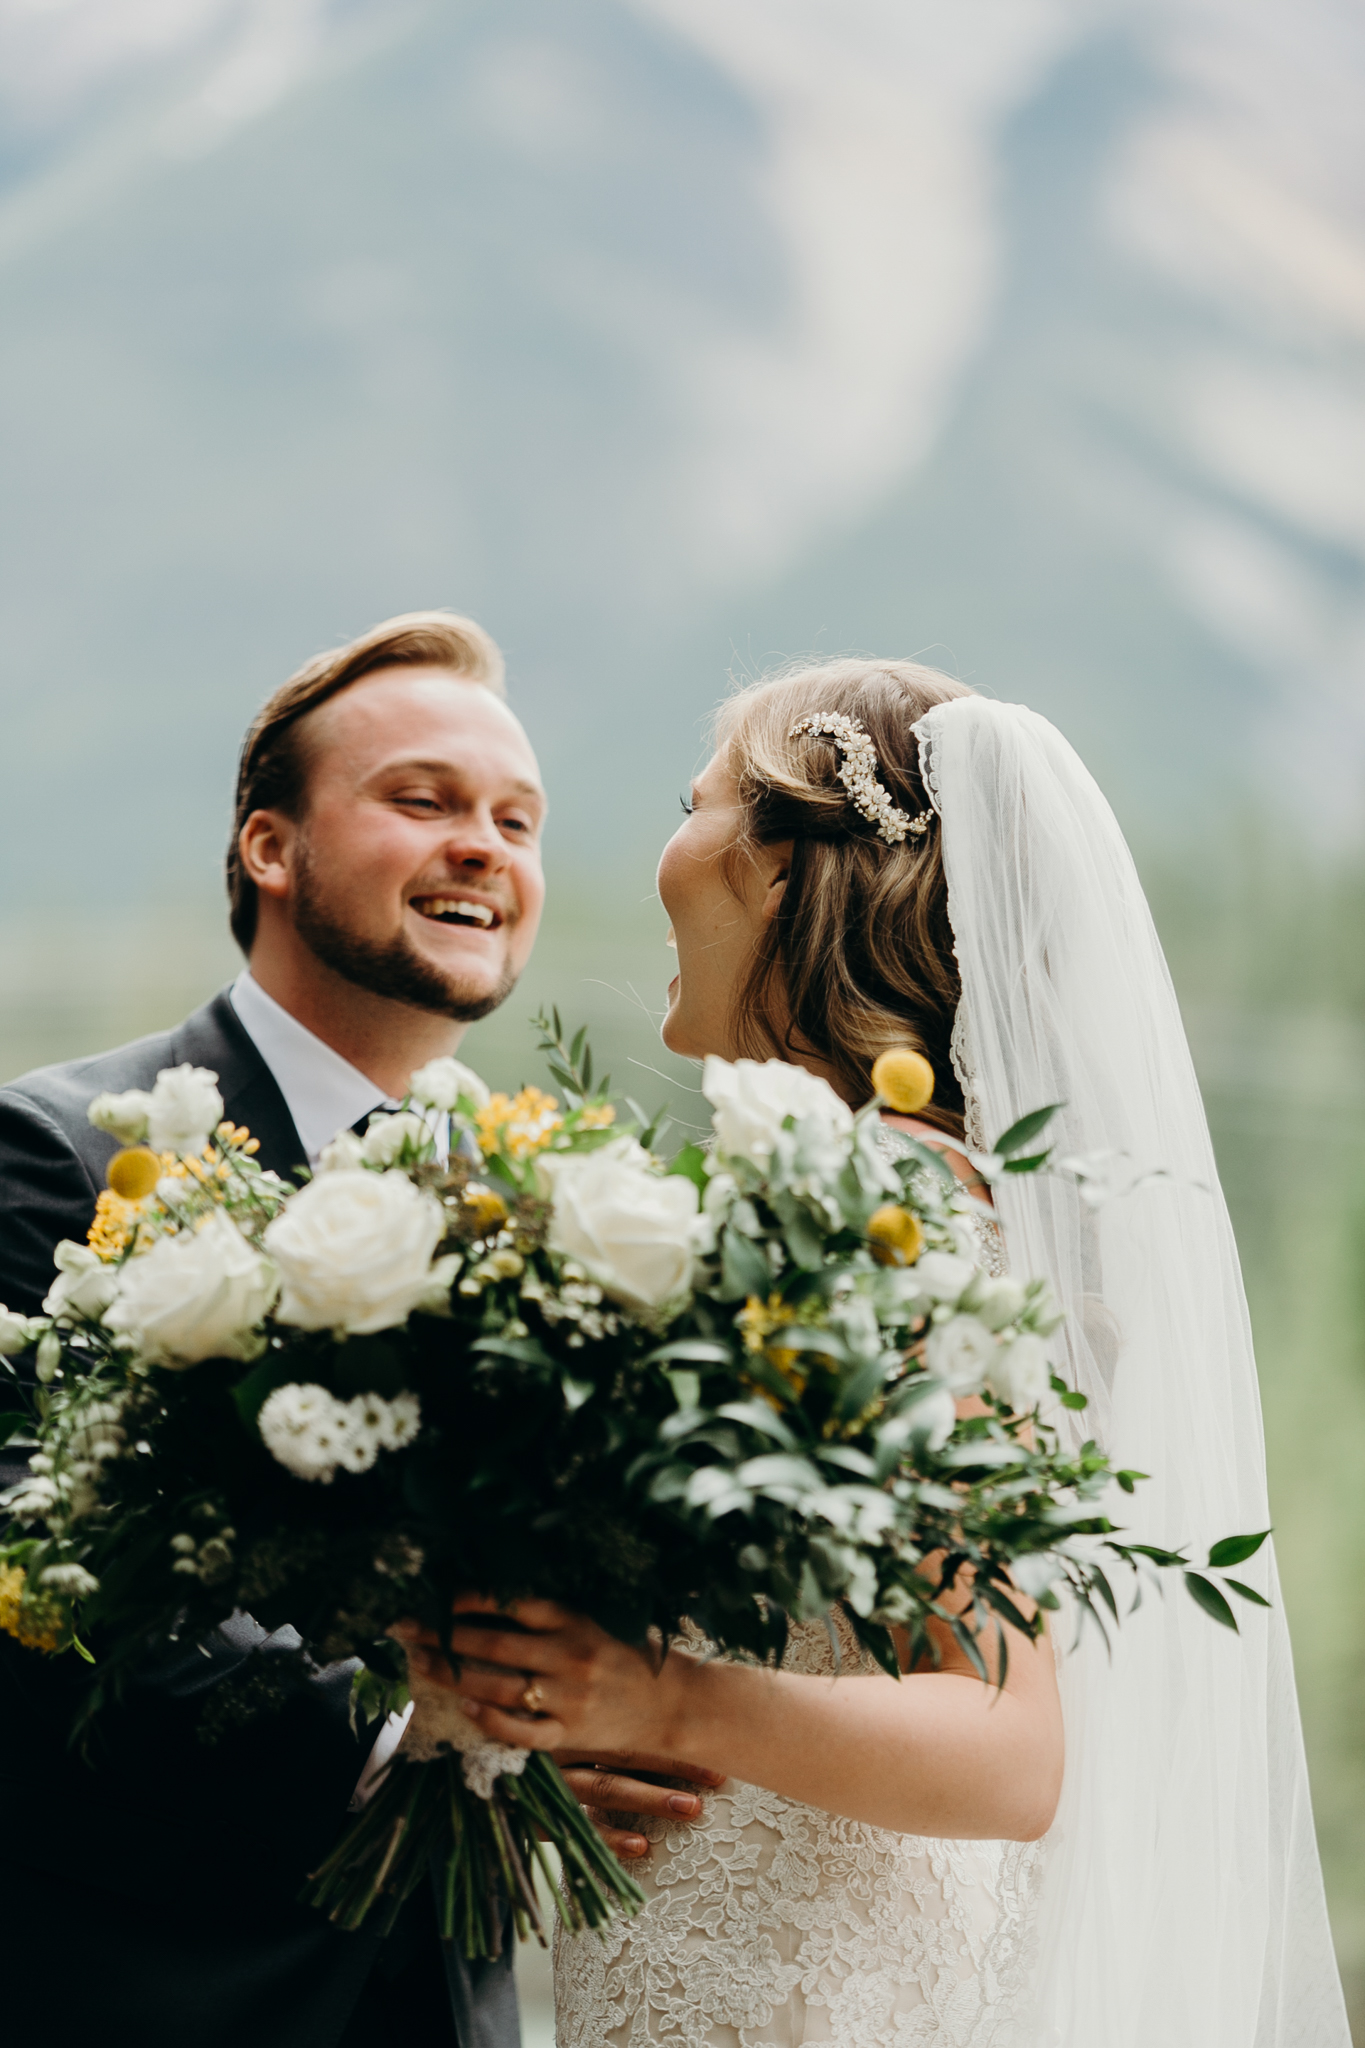 Bride and groom embrace romantic wedding photography MN destination wedding photographer Canmore AB